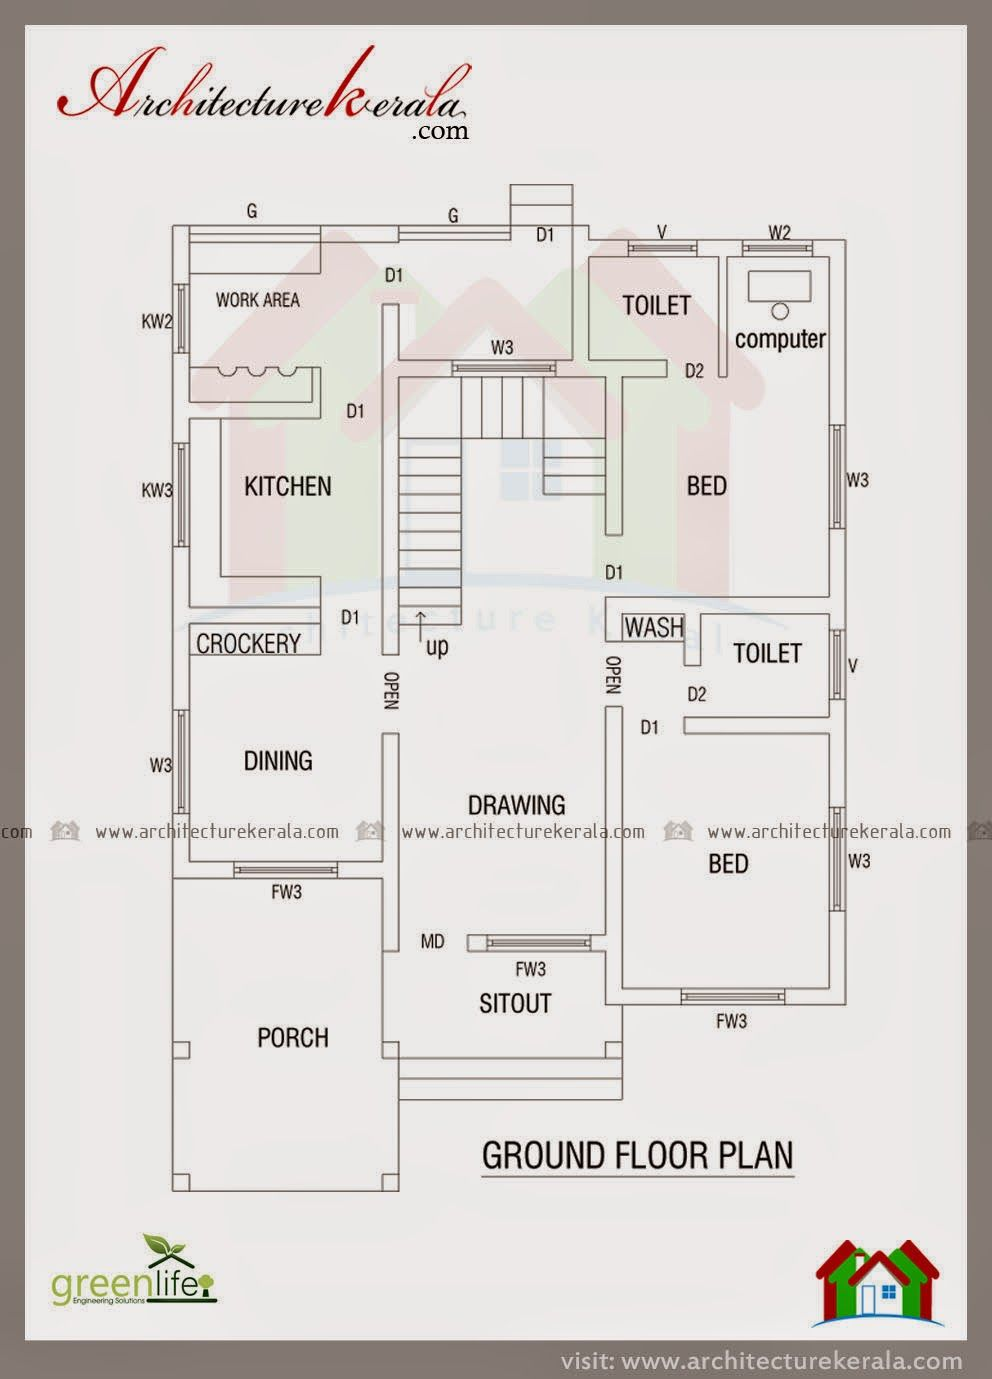 Building Drawing Plan Elevation Section Pdf : Building drawing plan elevation section pdf at getdrawings